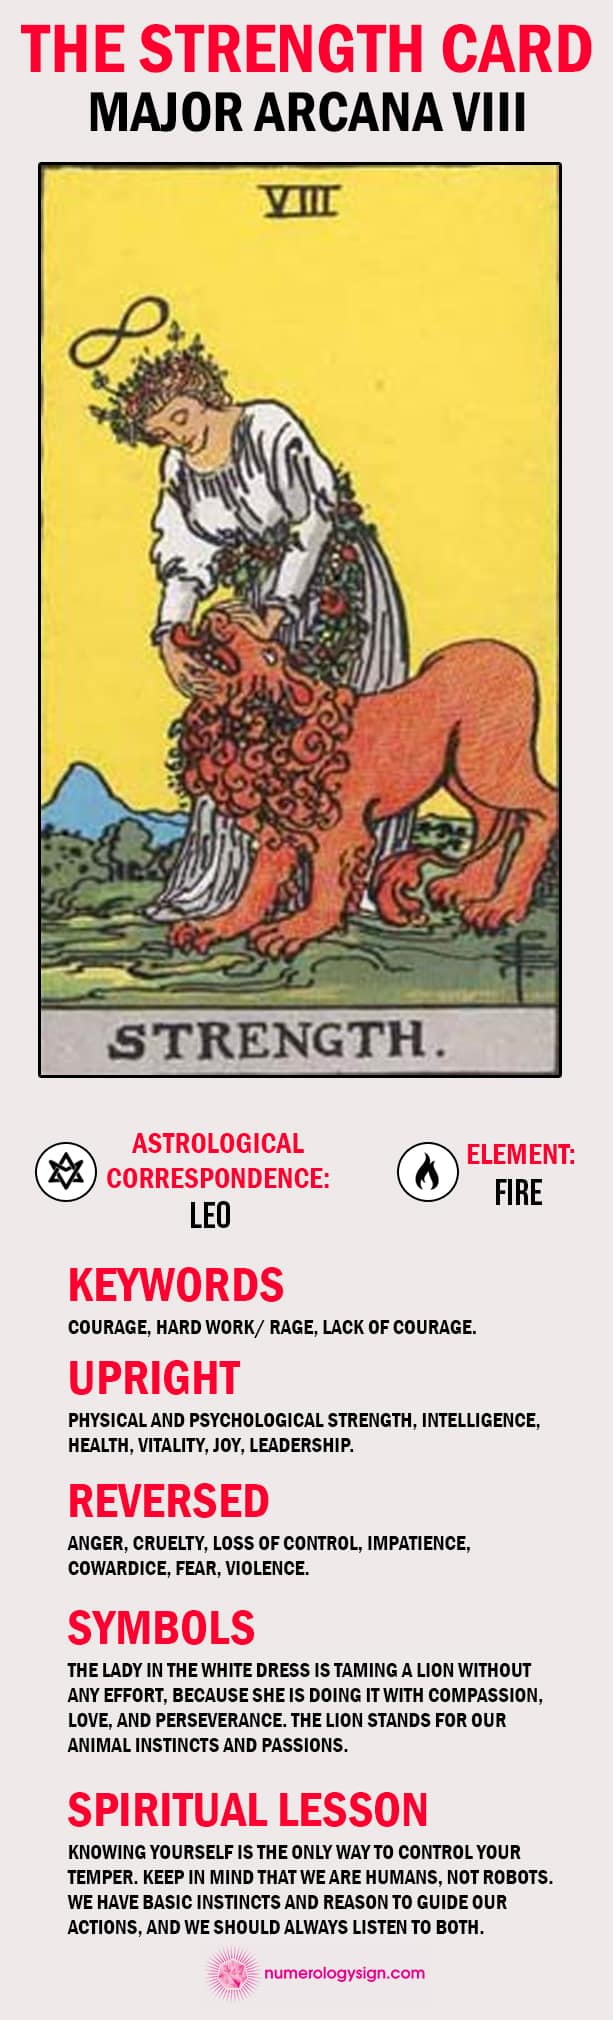 The Strength Tarot Card Meaning Infographic